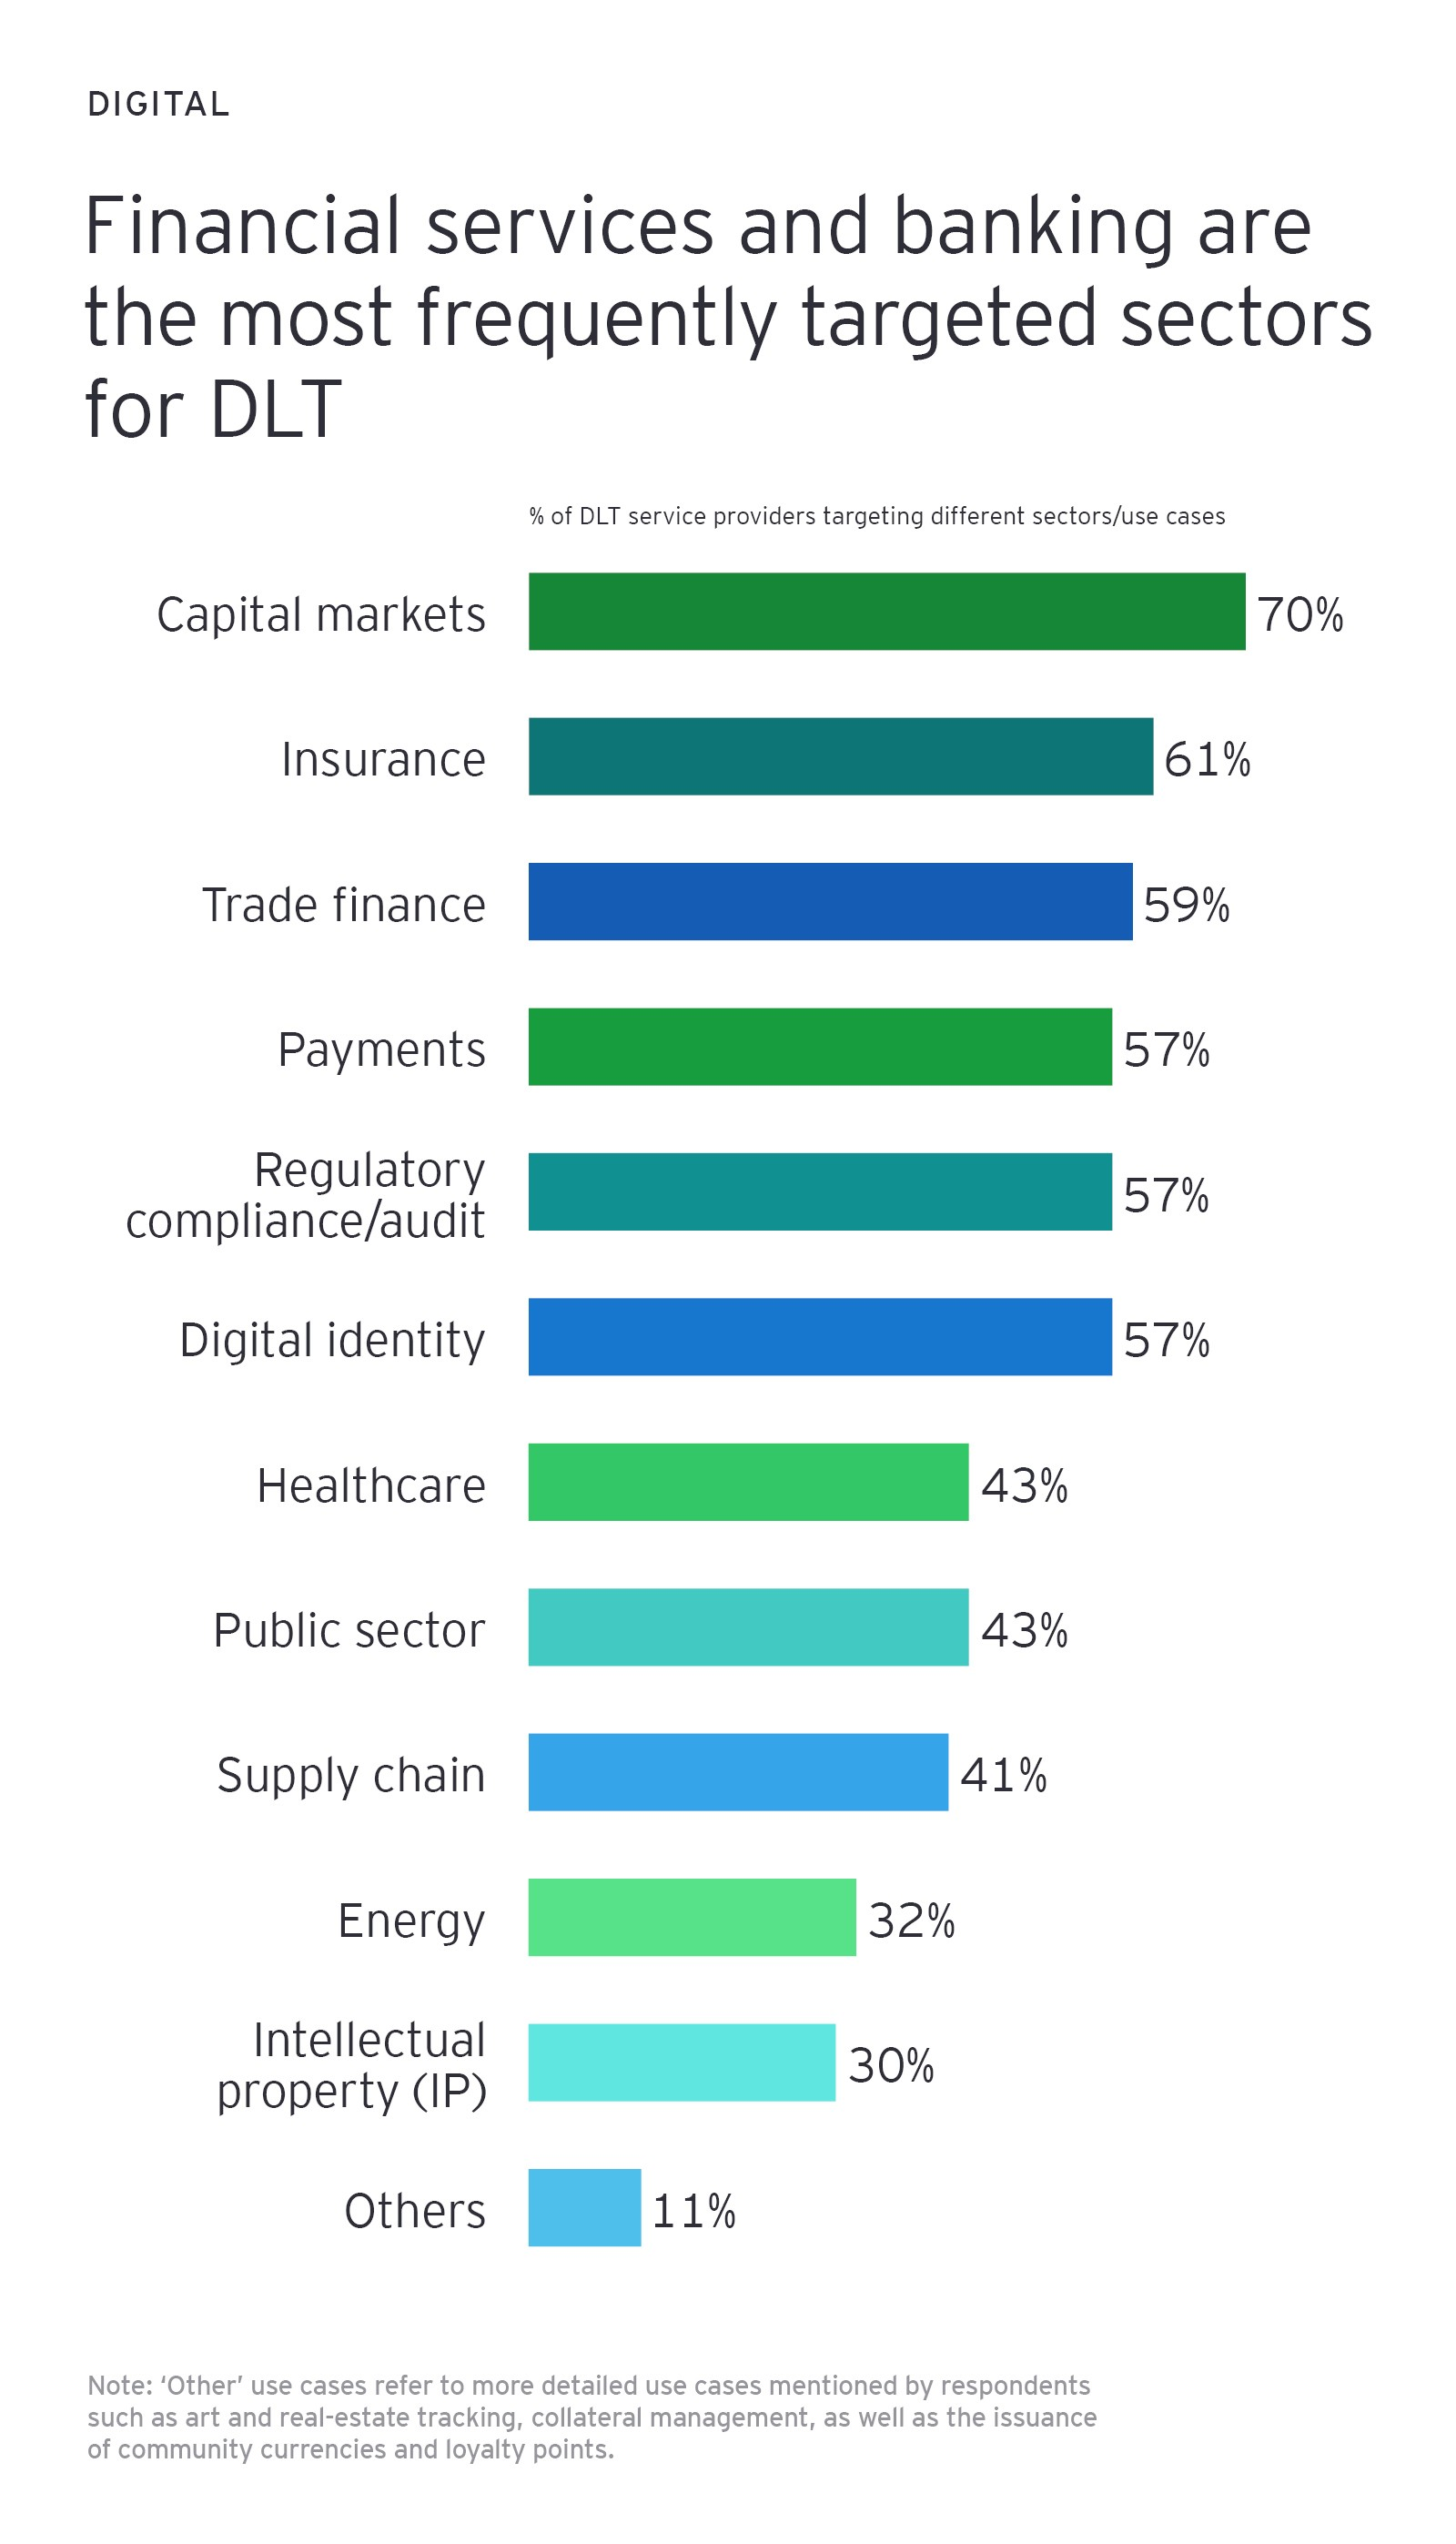 Financial services and banking are the most frequently targeted sectors for DLT